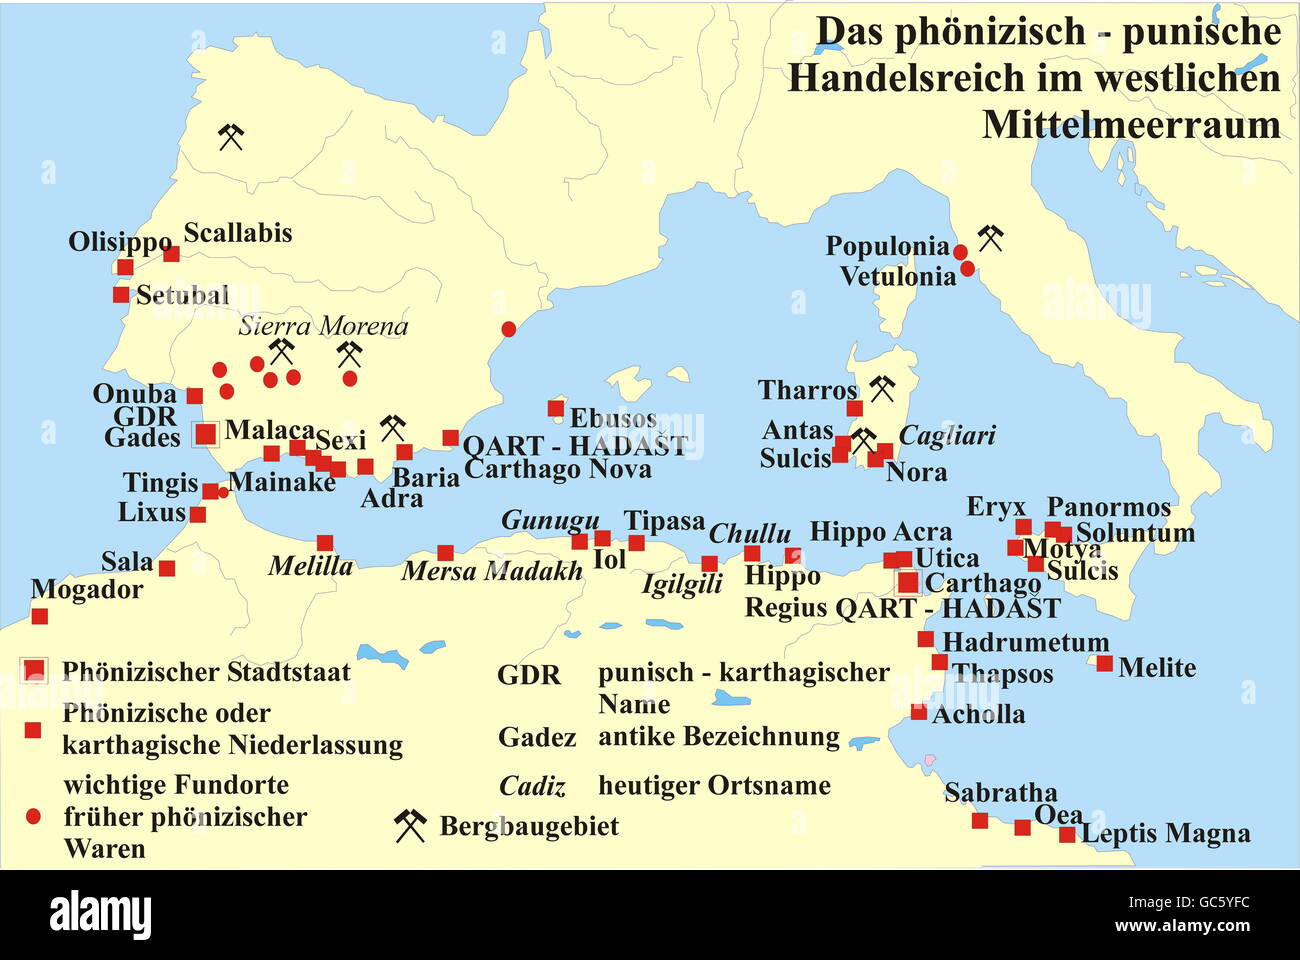 cartography, historical maps, Ancient World, Phoenician - Punic ...